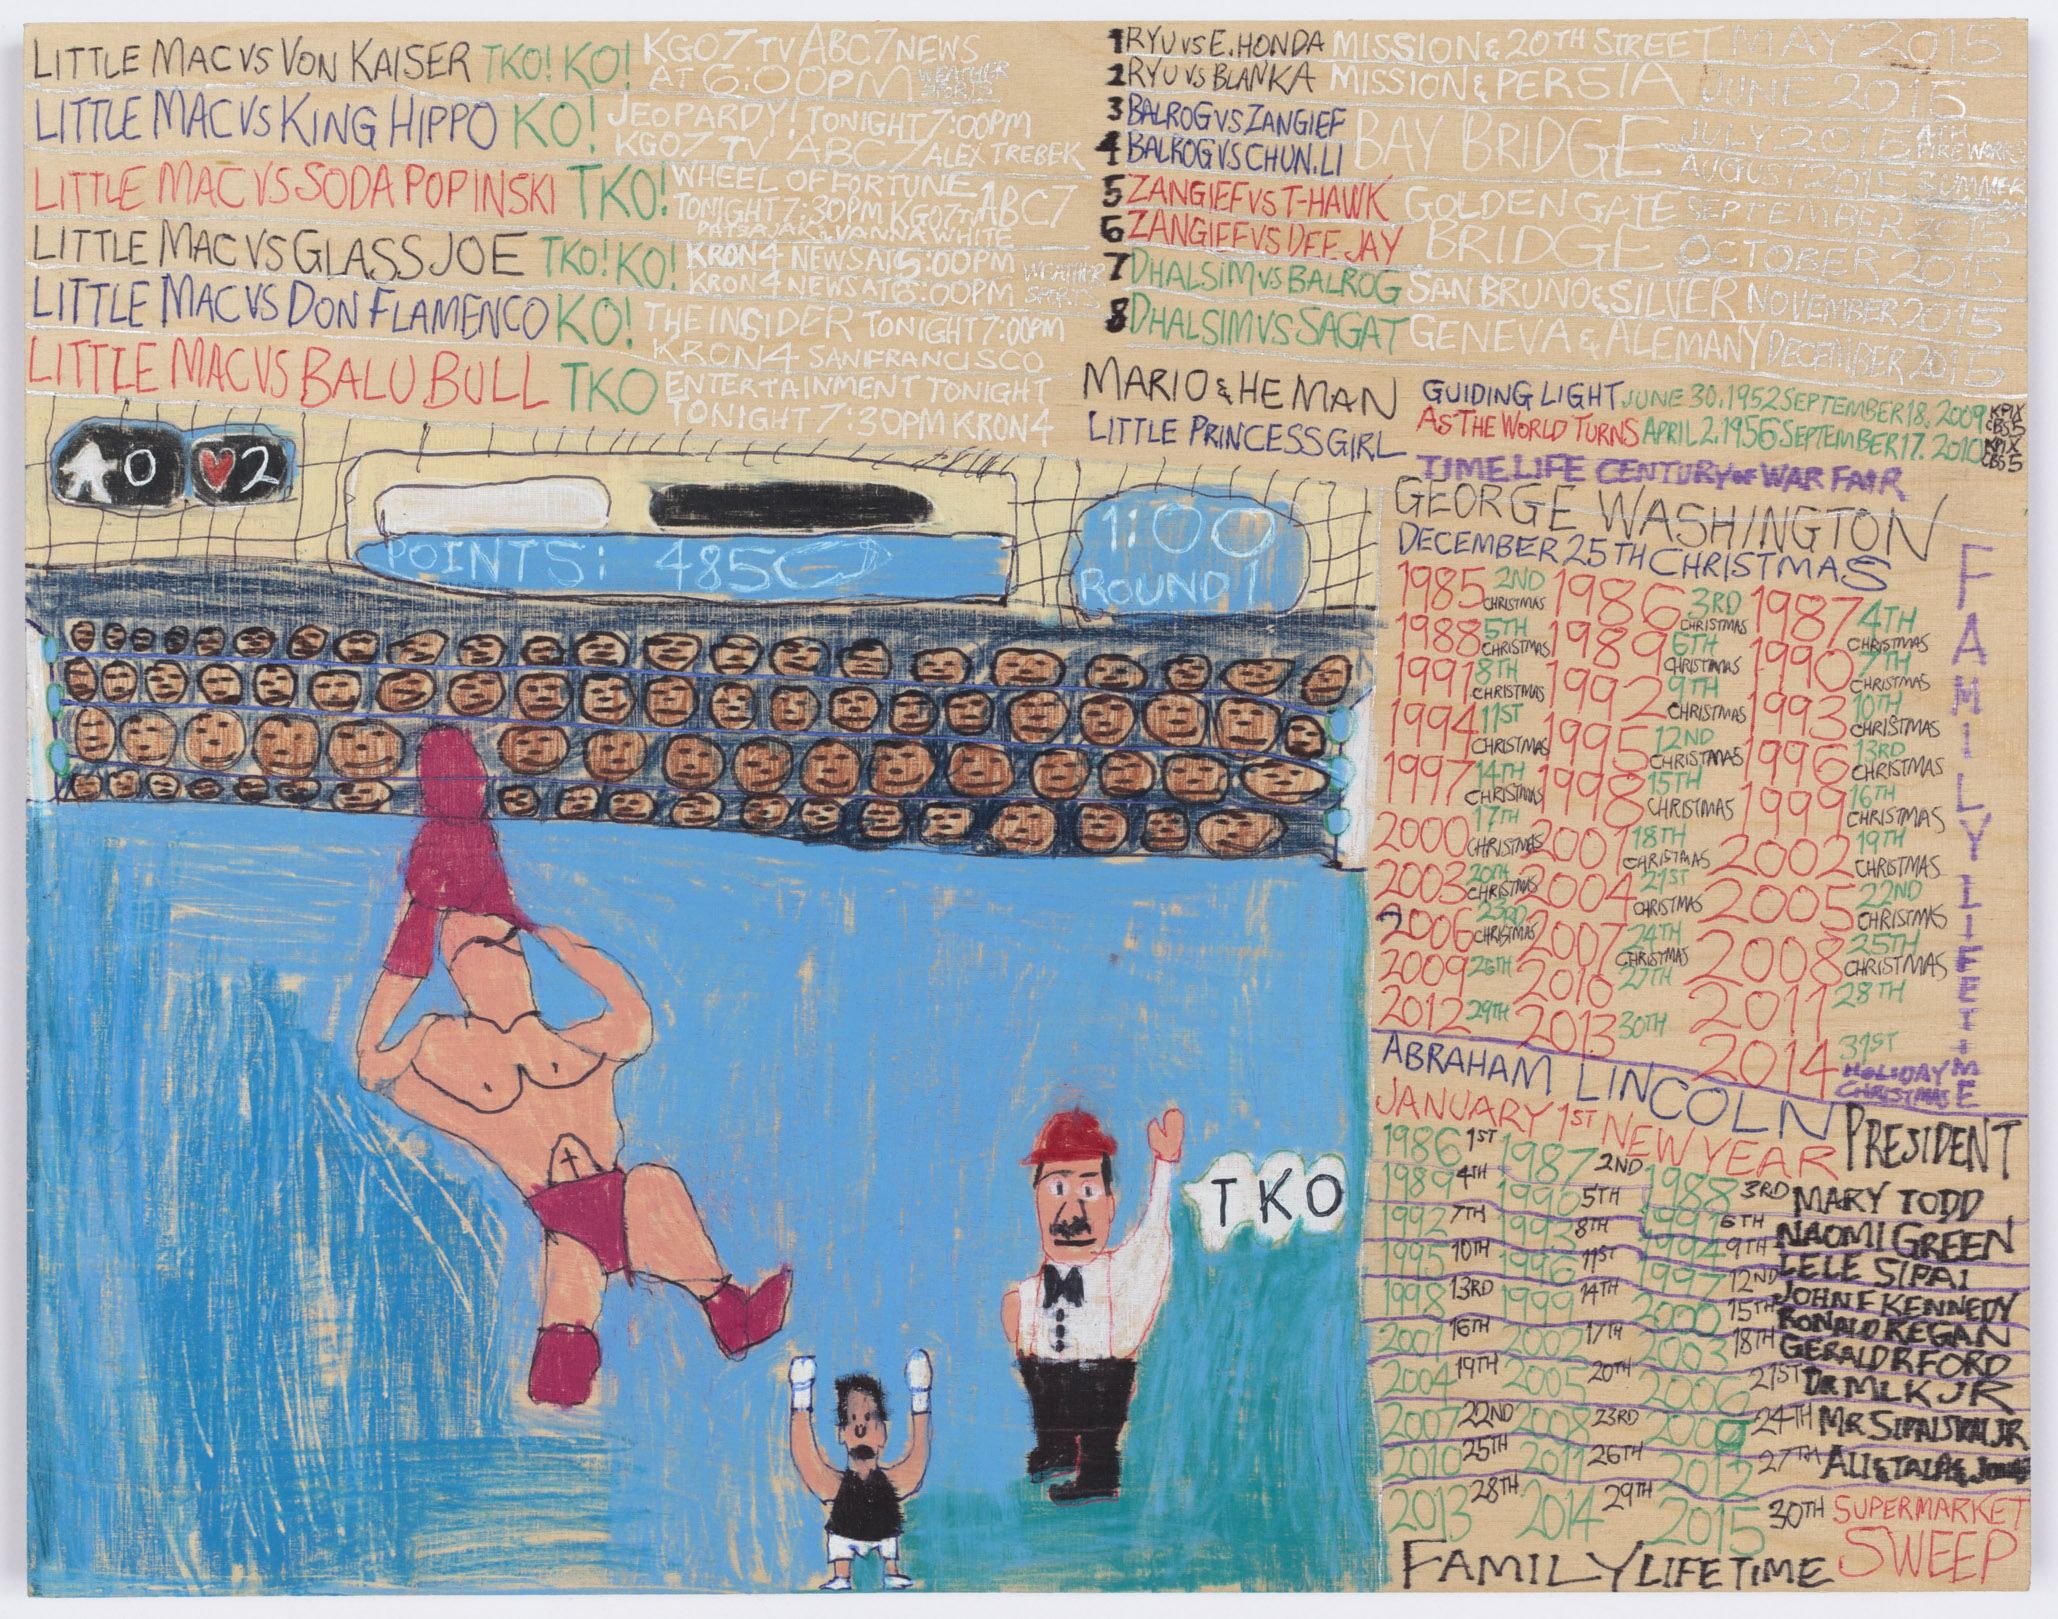 Daniel Green,  Little Mac vs Soda Poponski , 2015, mixed media on wood, 11.5 x 15 inches